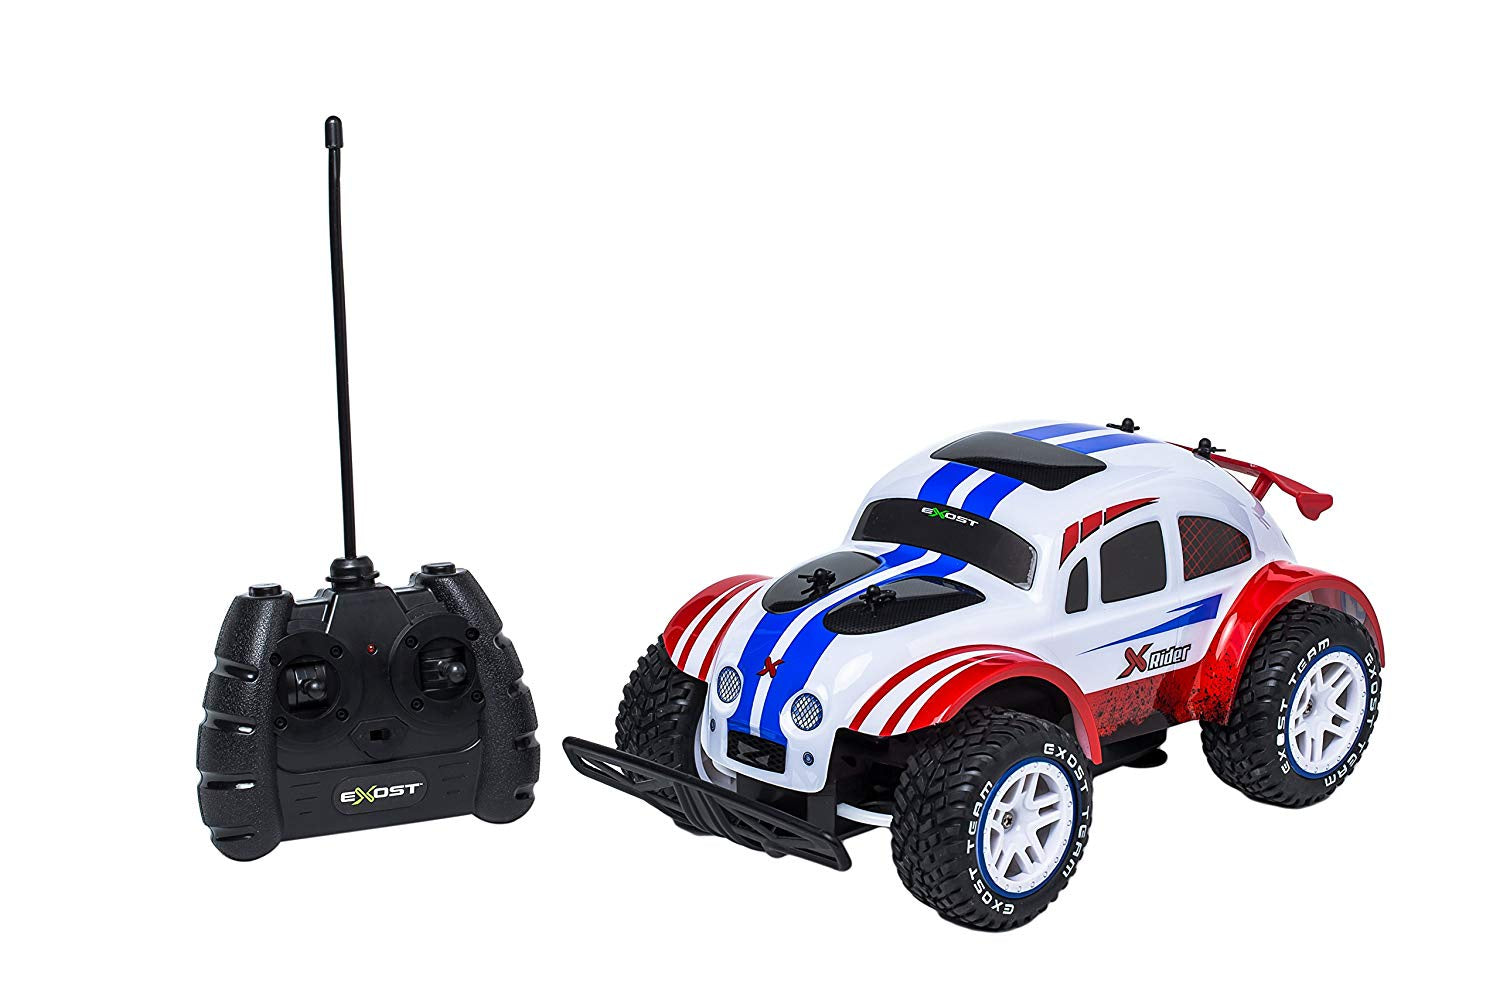 Exost X-Rider 2 R/C All Terrain Vehicle